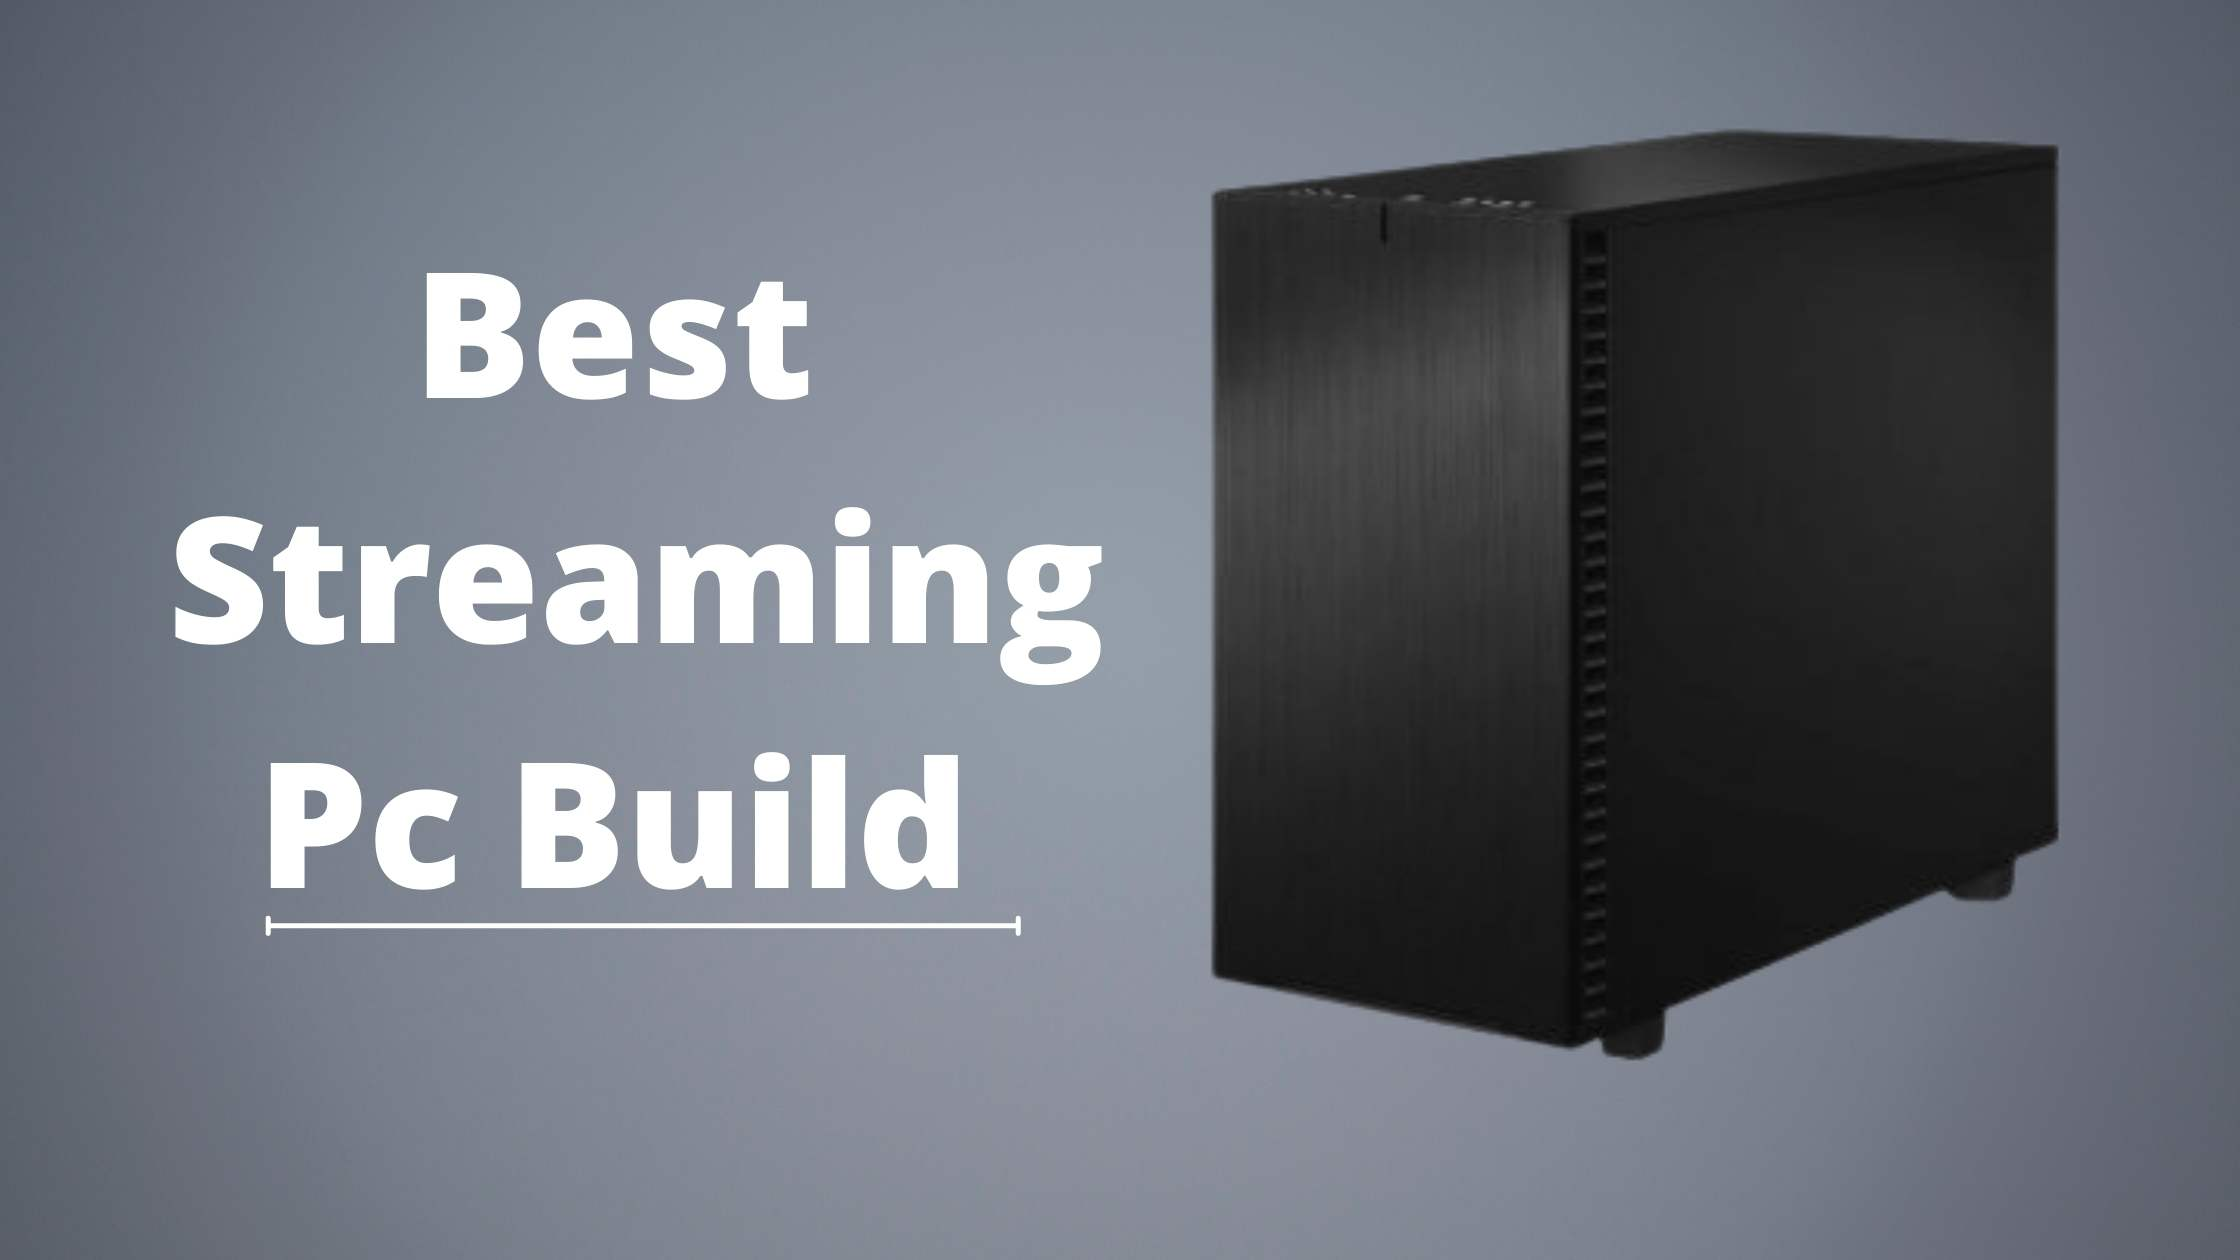 Best Streaming Pc Build